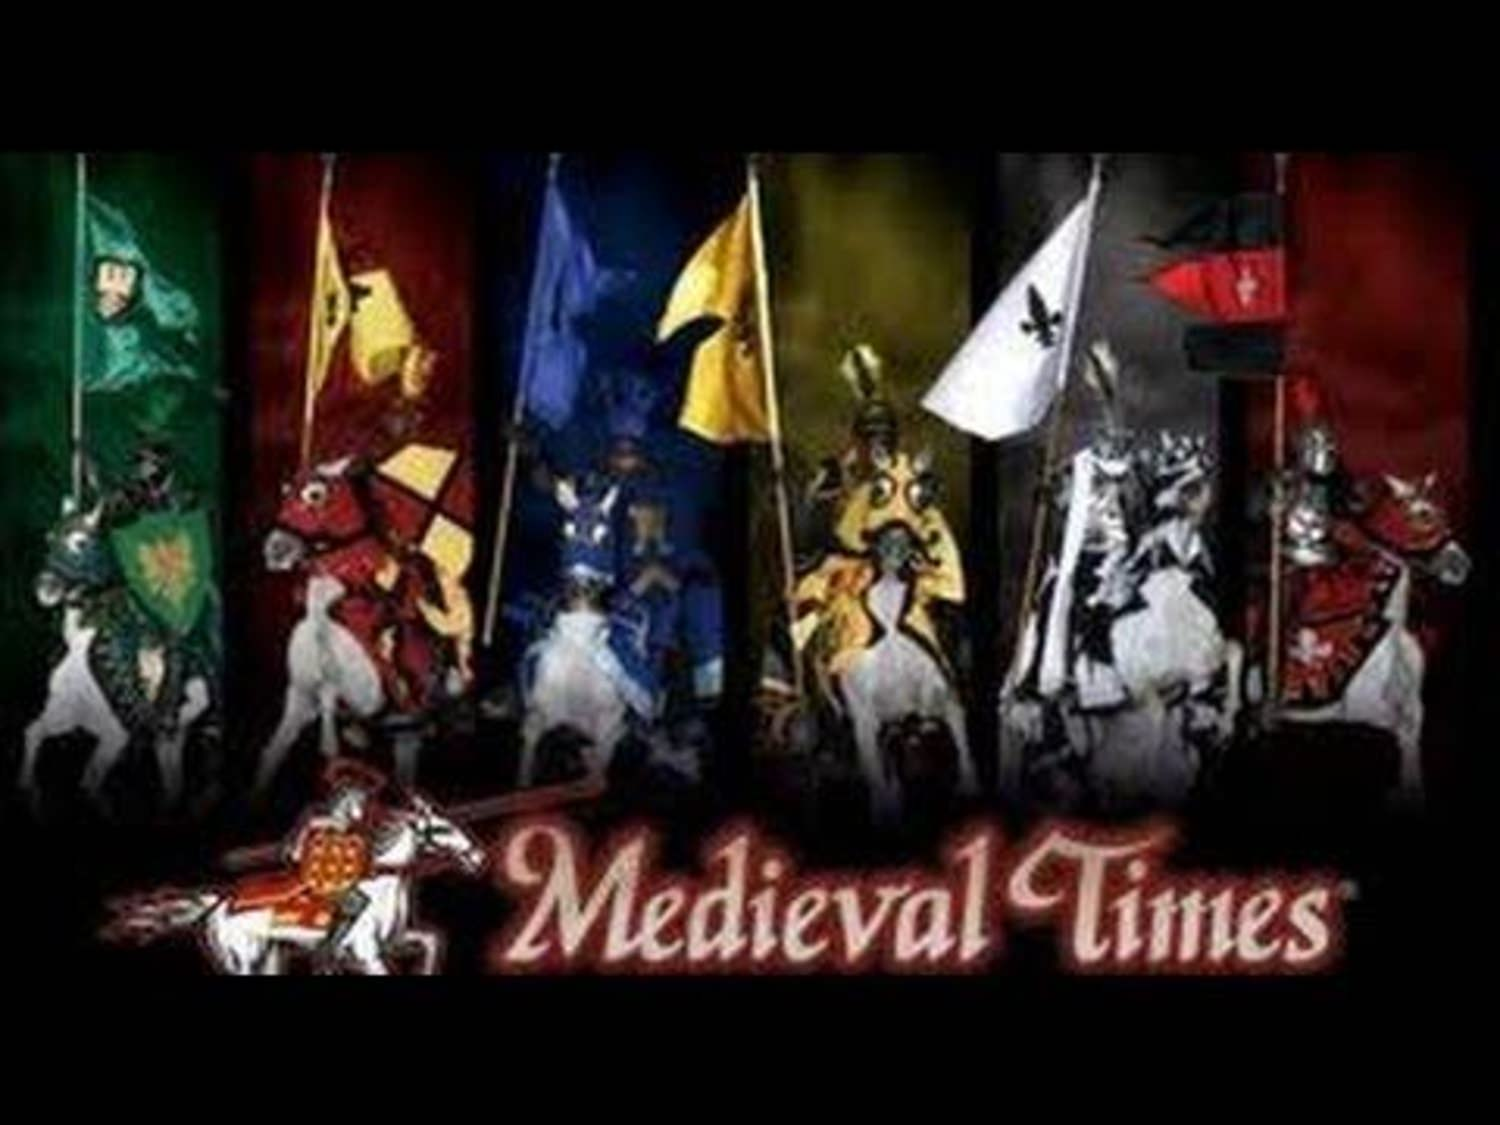 Medieval Times Cub Scout Camporee | Jersey Shore Council